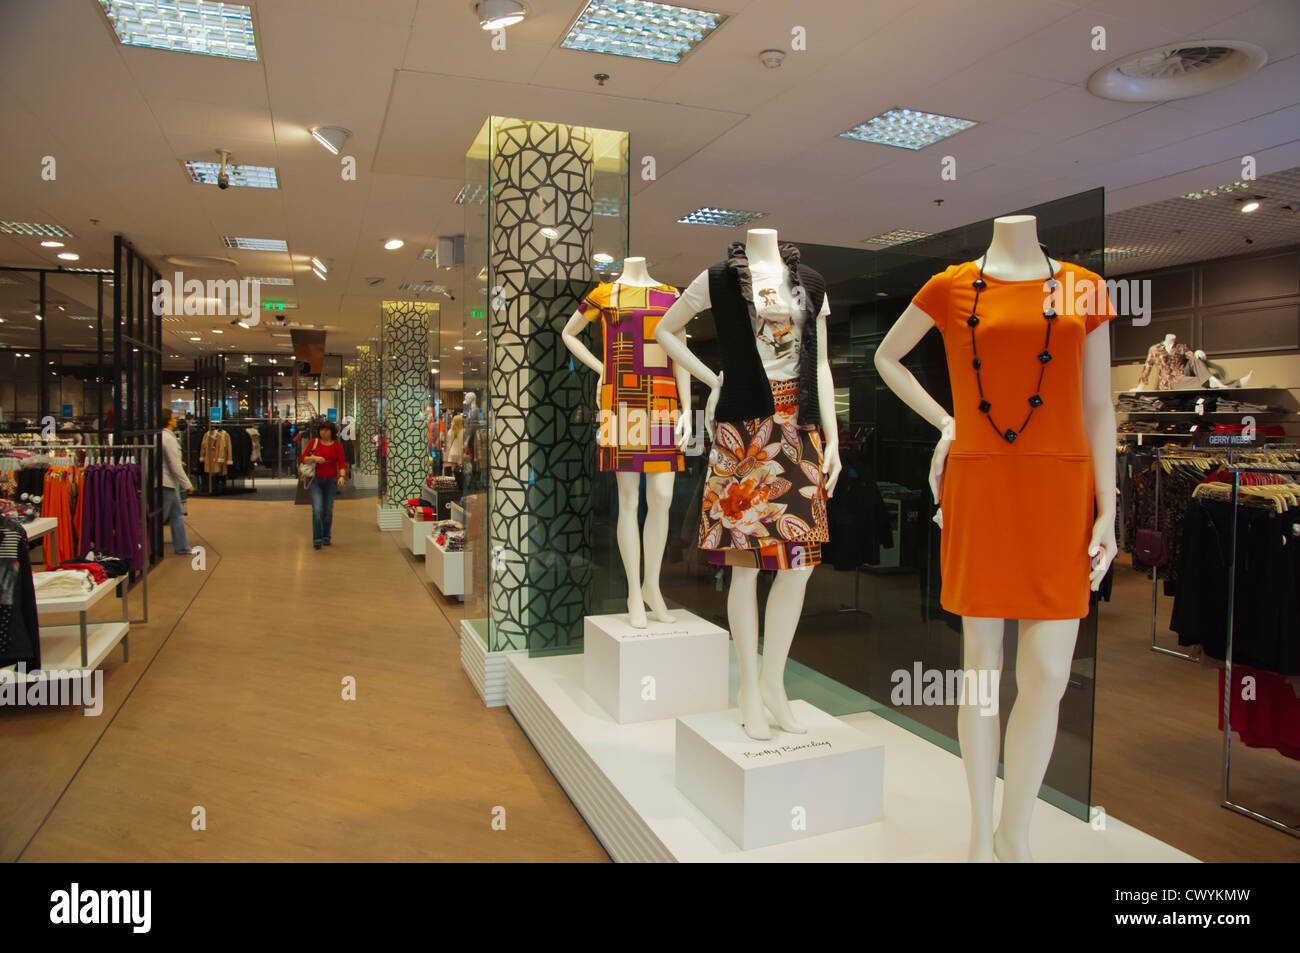 889f4e4a4f4 New women's clothing department Kaubamaja department store Tallinn Estonia  Europe - Stock Image